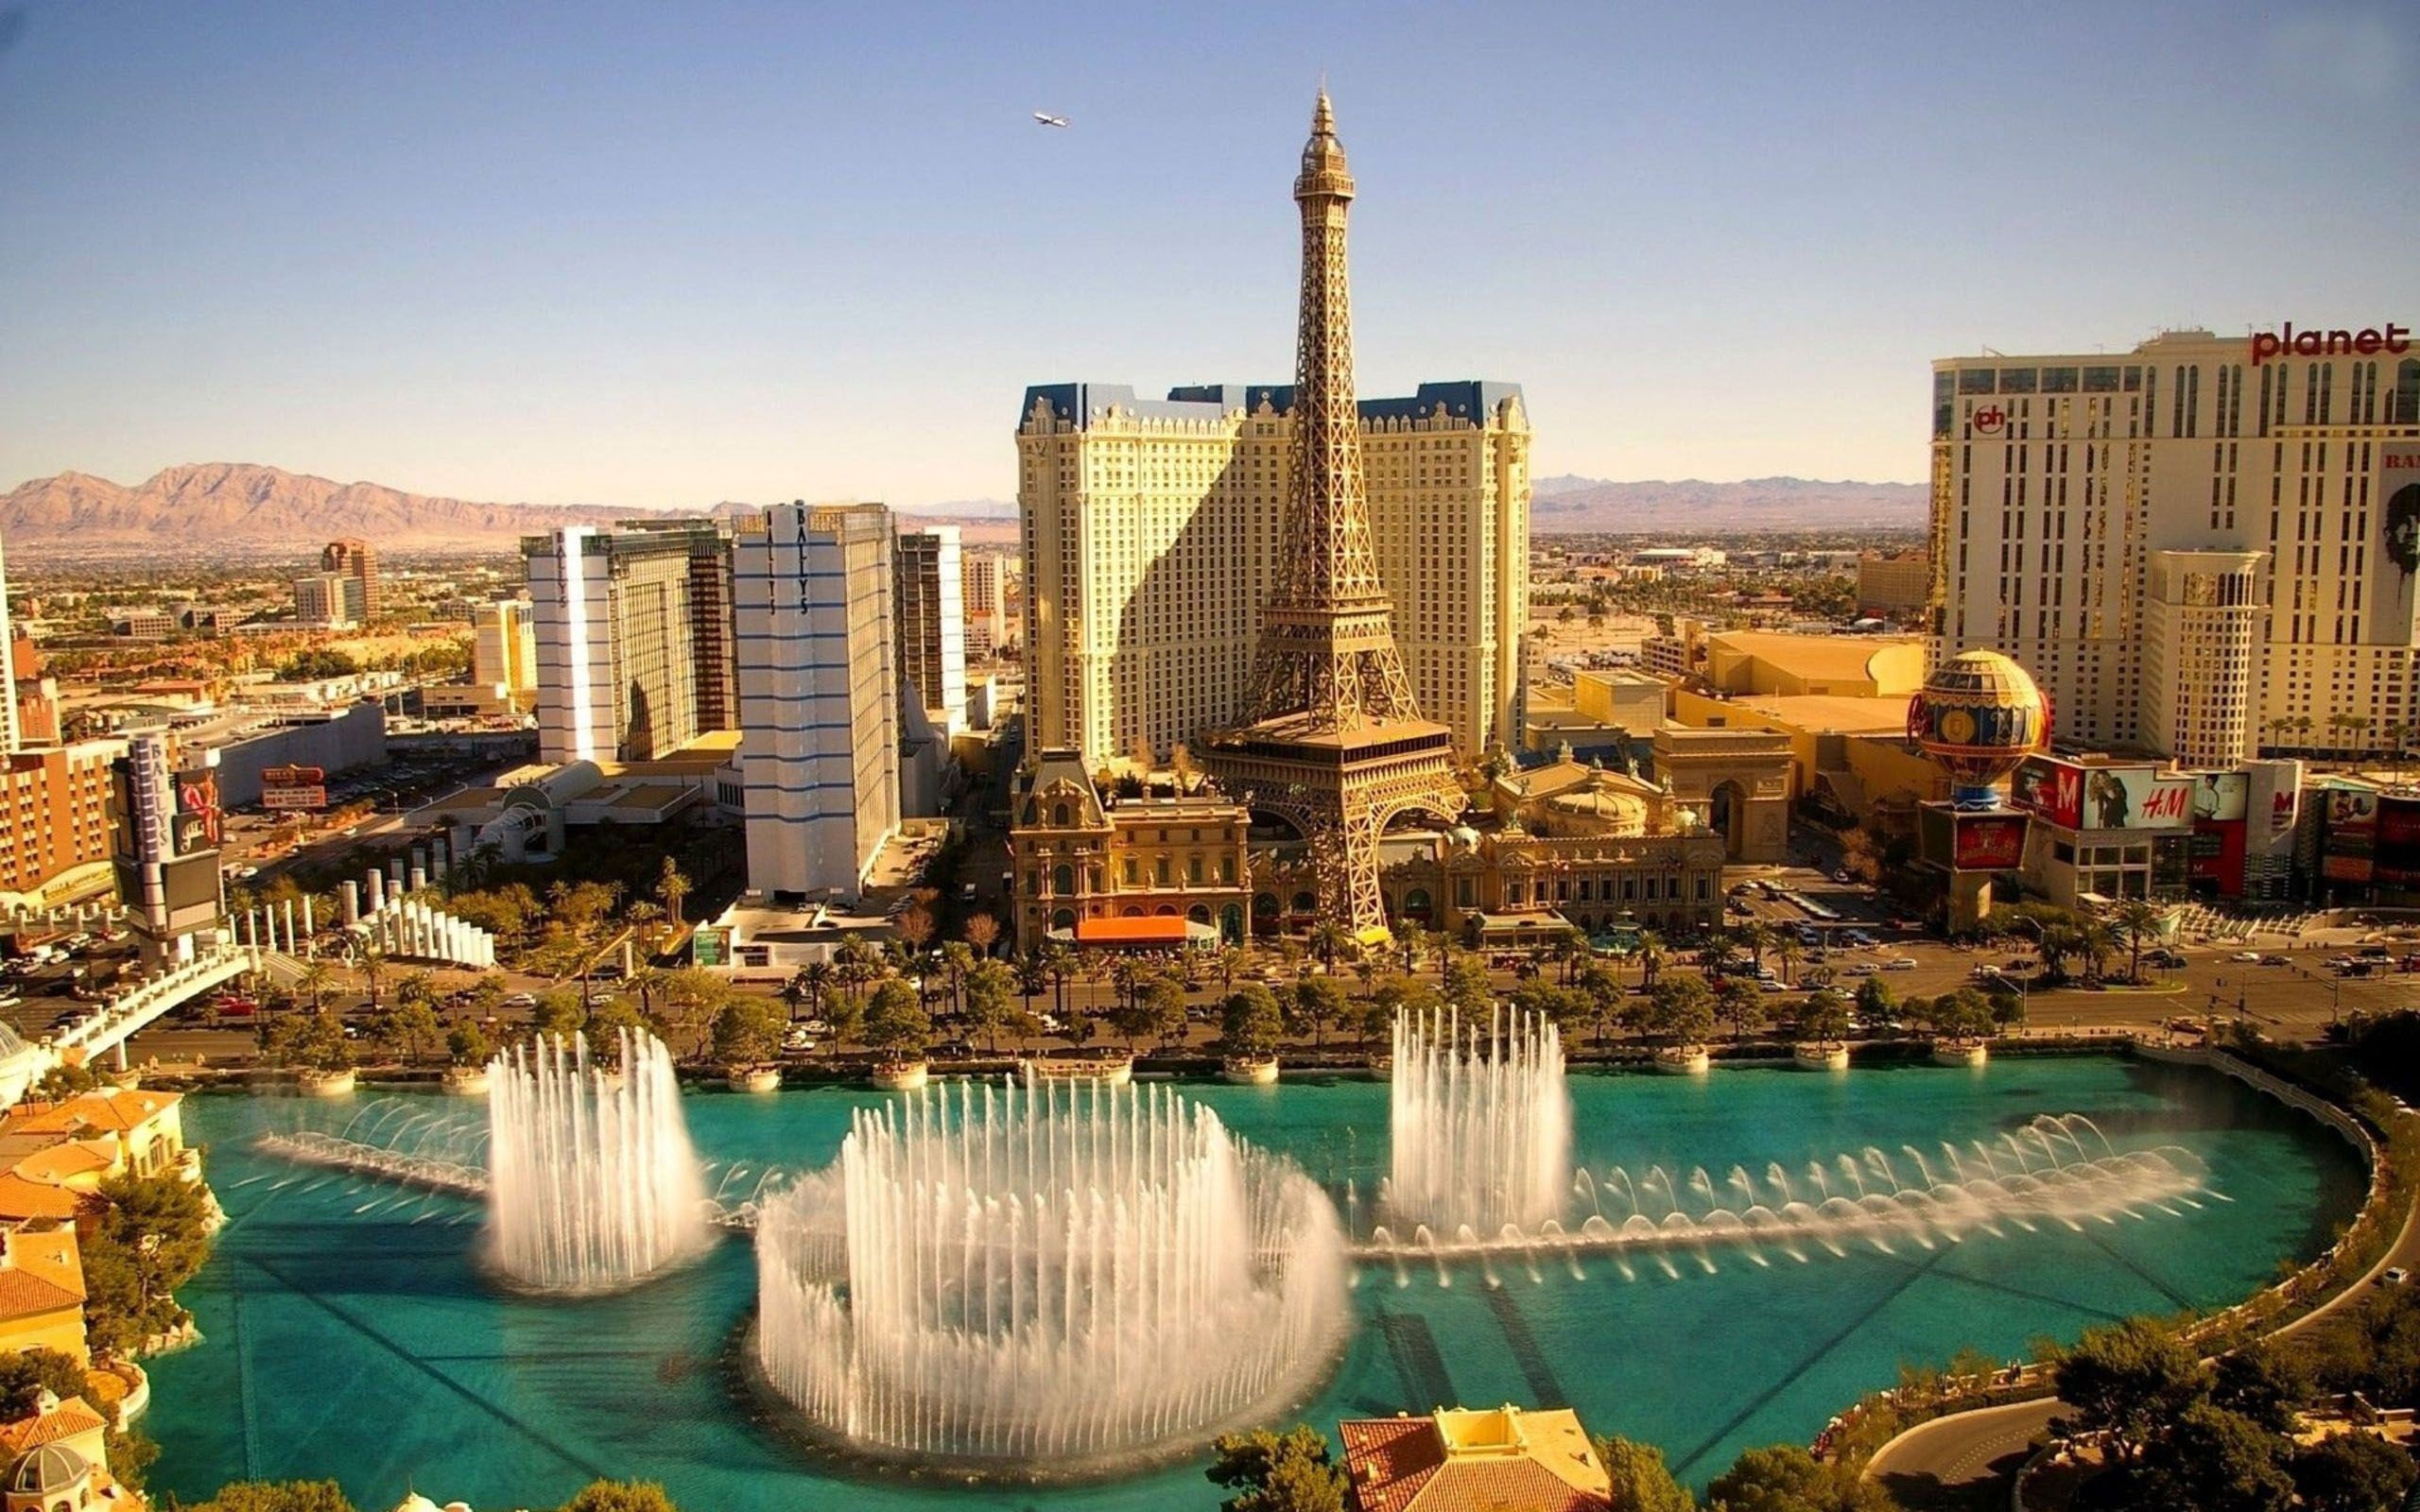 Las Vegas Fountains Hd World 4k Wallpapers Images